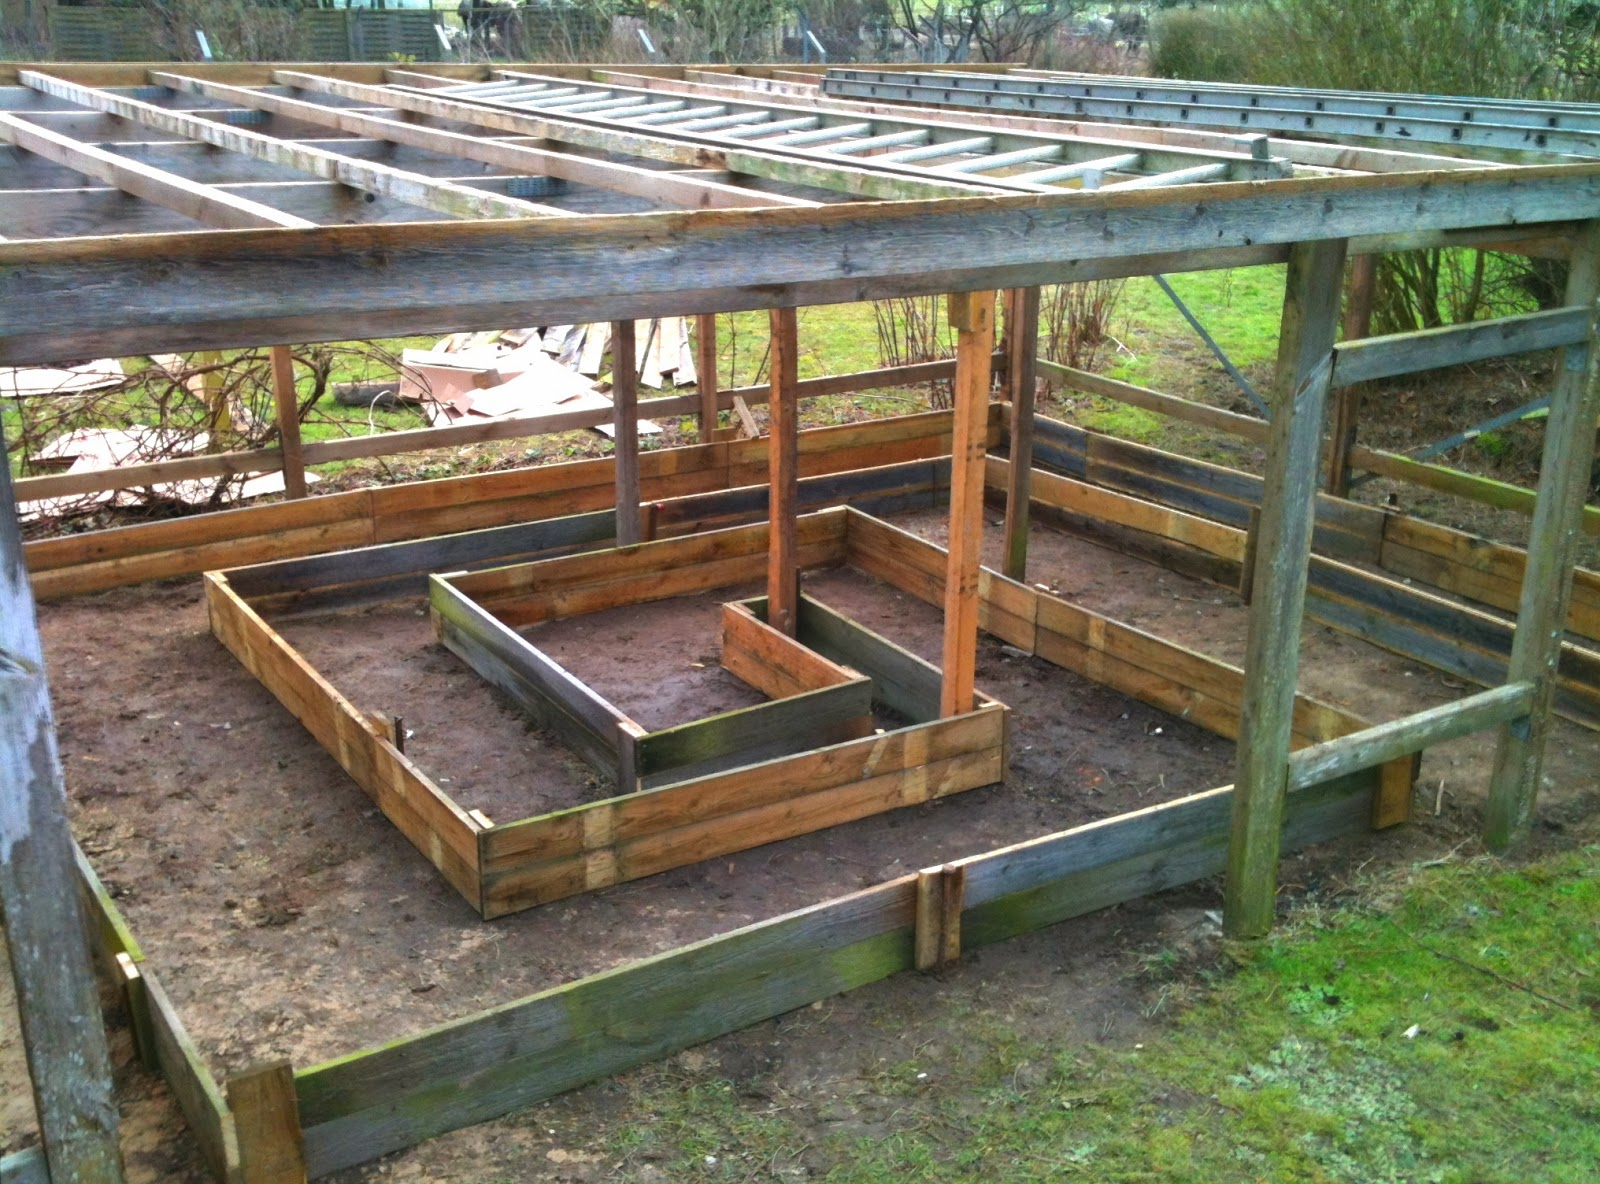 Chop Wood Carry Water Plant Seeds: The Spiral Greenhouse